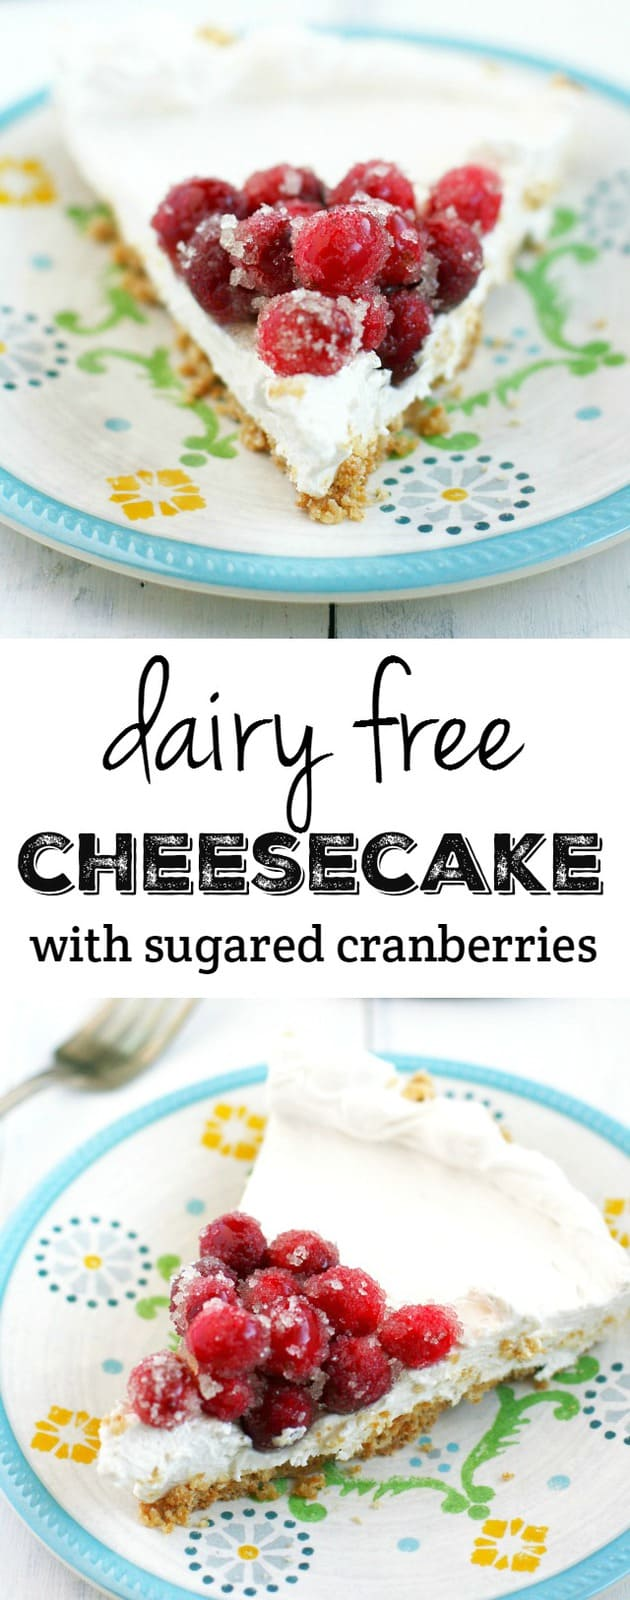 An easy recipe for dairy free cheesecake topped with sugared cranberries and finished with a shortbread crust. A fun holiday dessert! #vegan #glutenfree